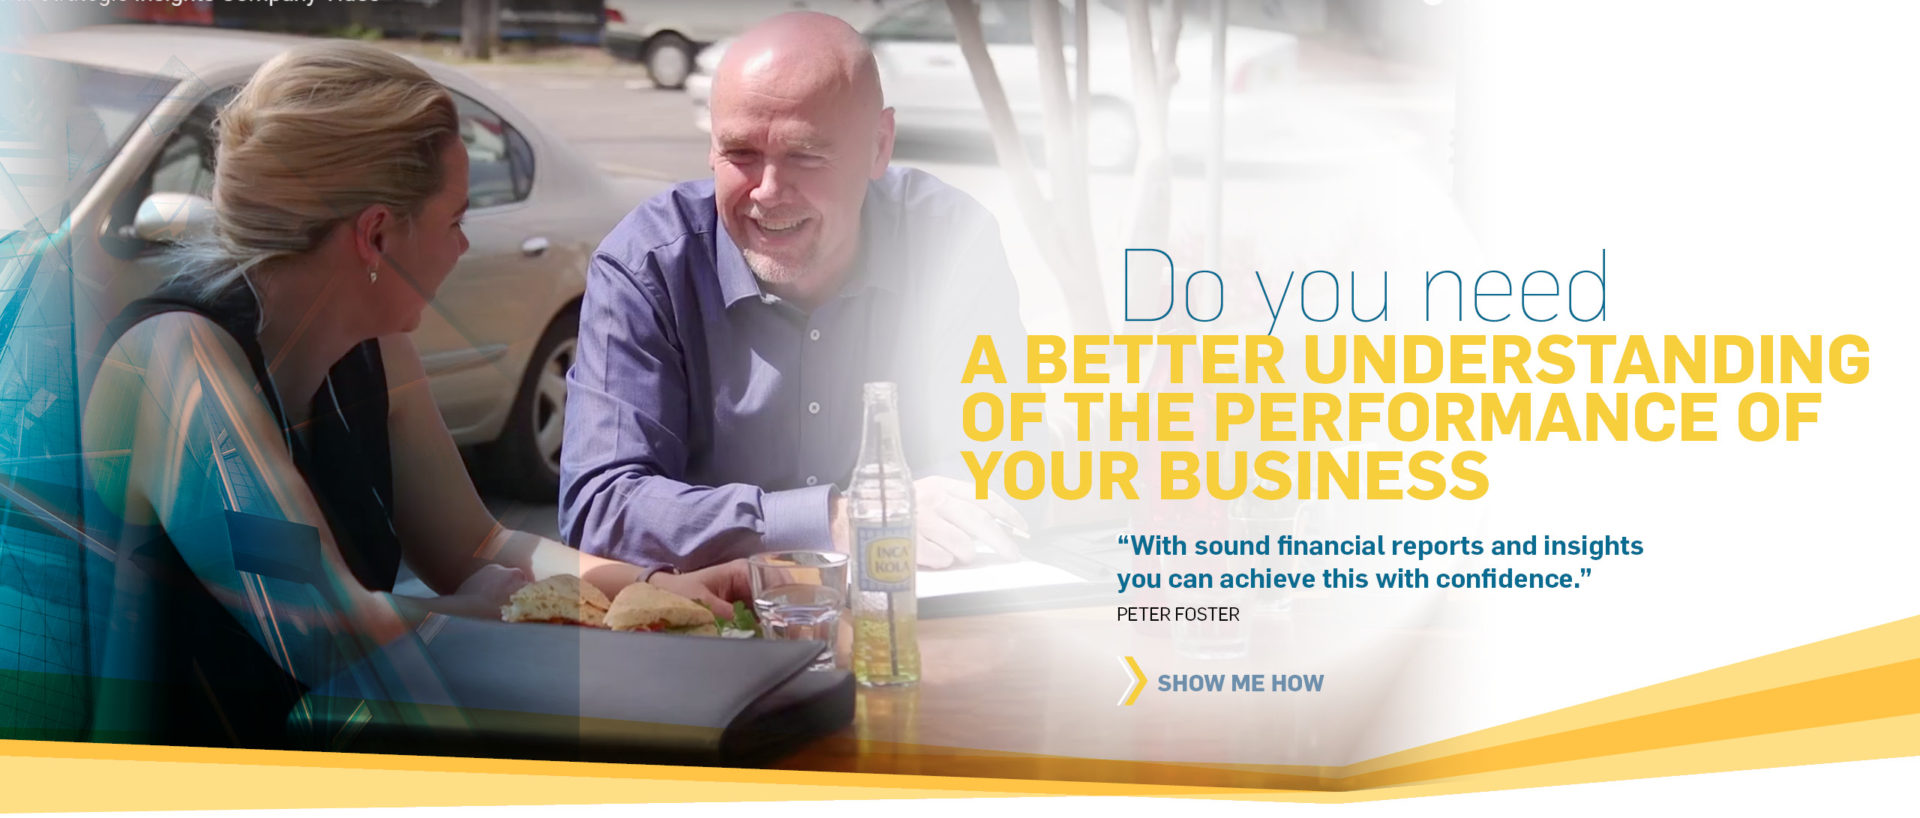 A BETTER UNDERSTANDING OF THE PERFORMANCE OF YOUR BUSINESS